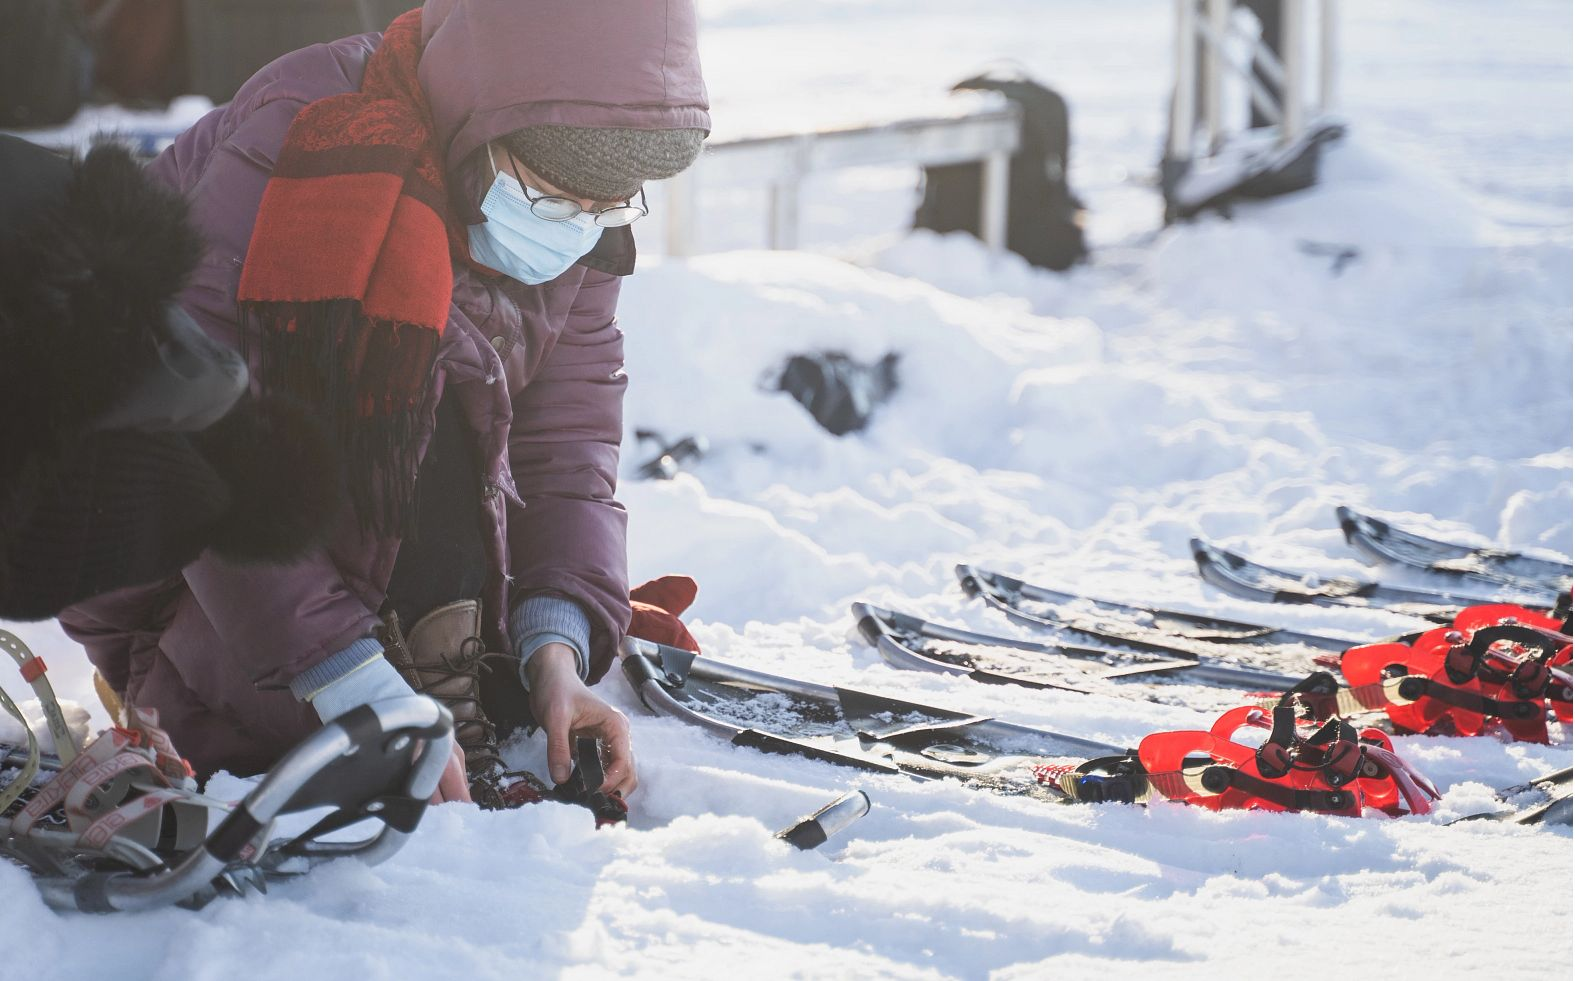 A person puts on a snowshoe